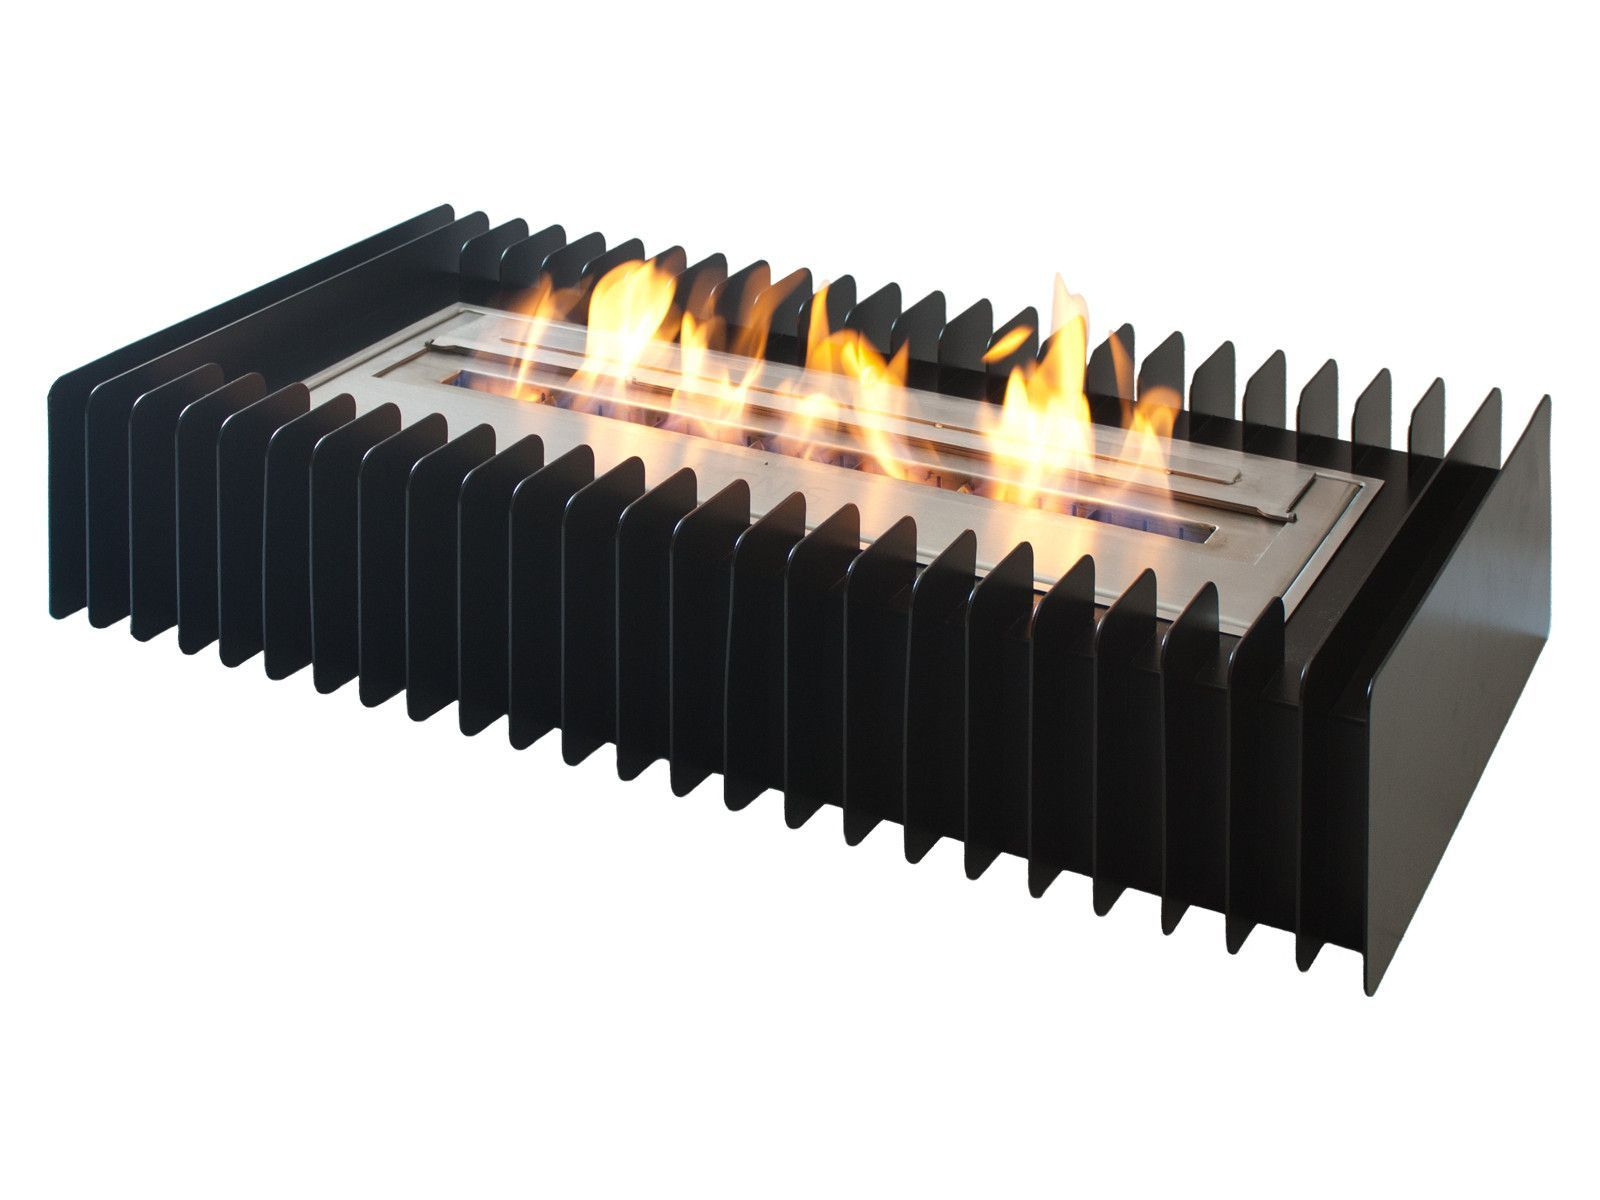 ebg2400 ethanol fireplace grate products ethanol fireplace and